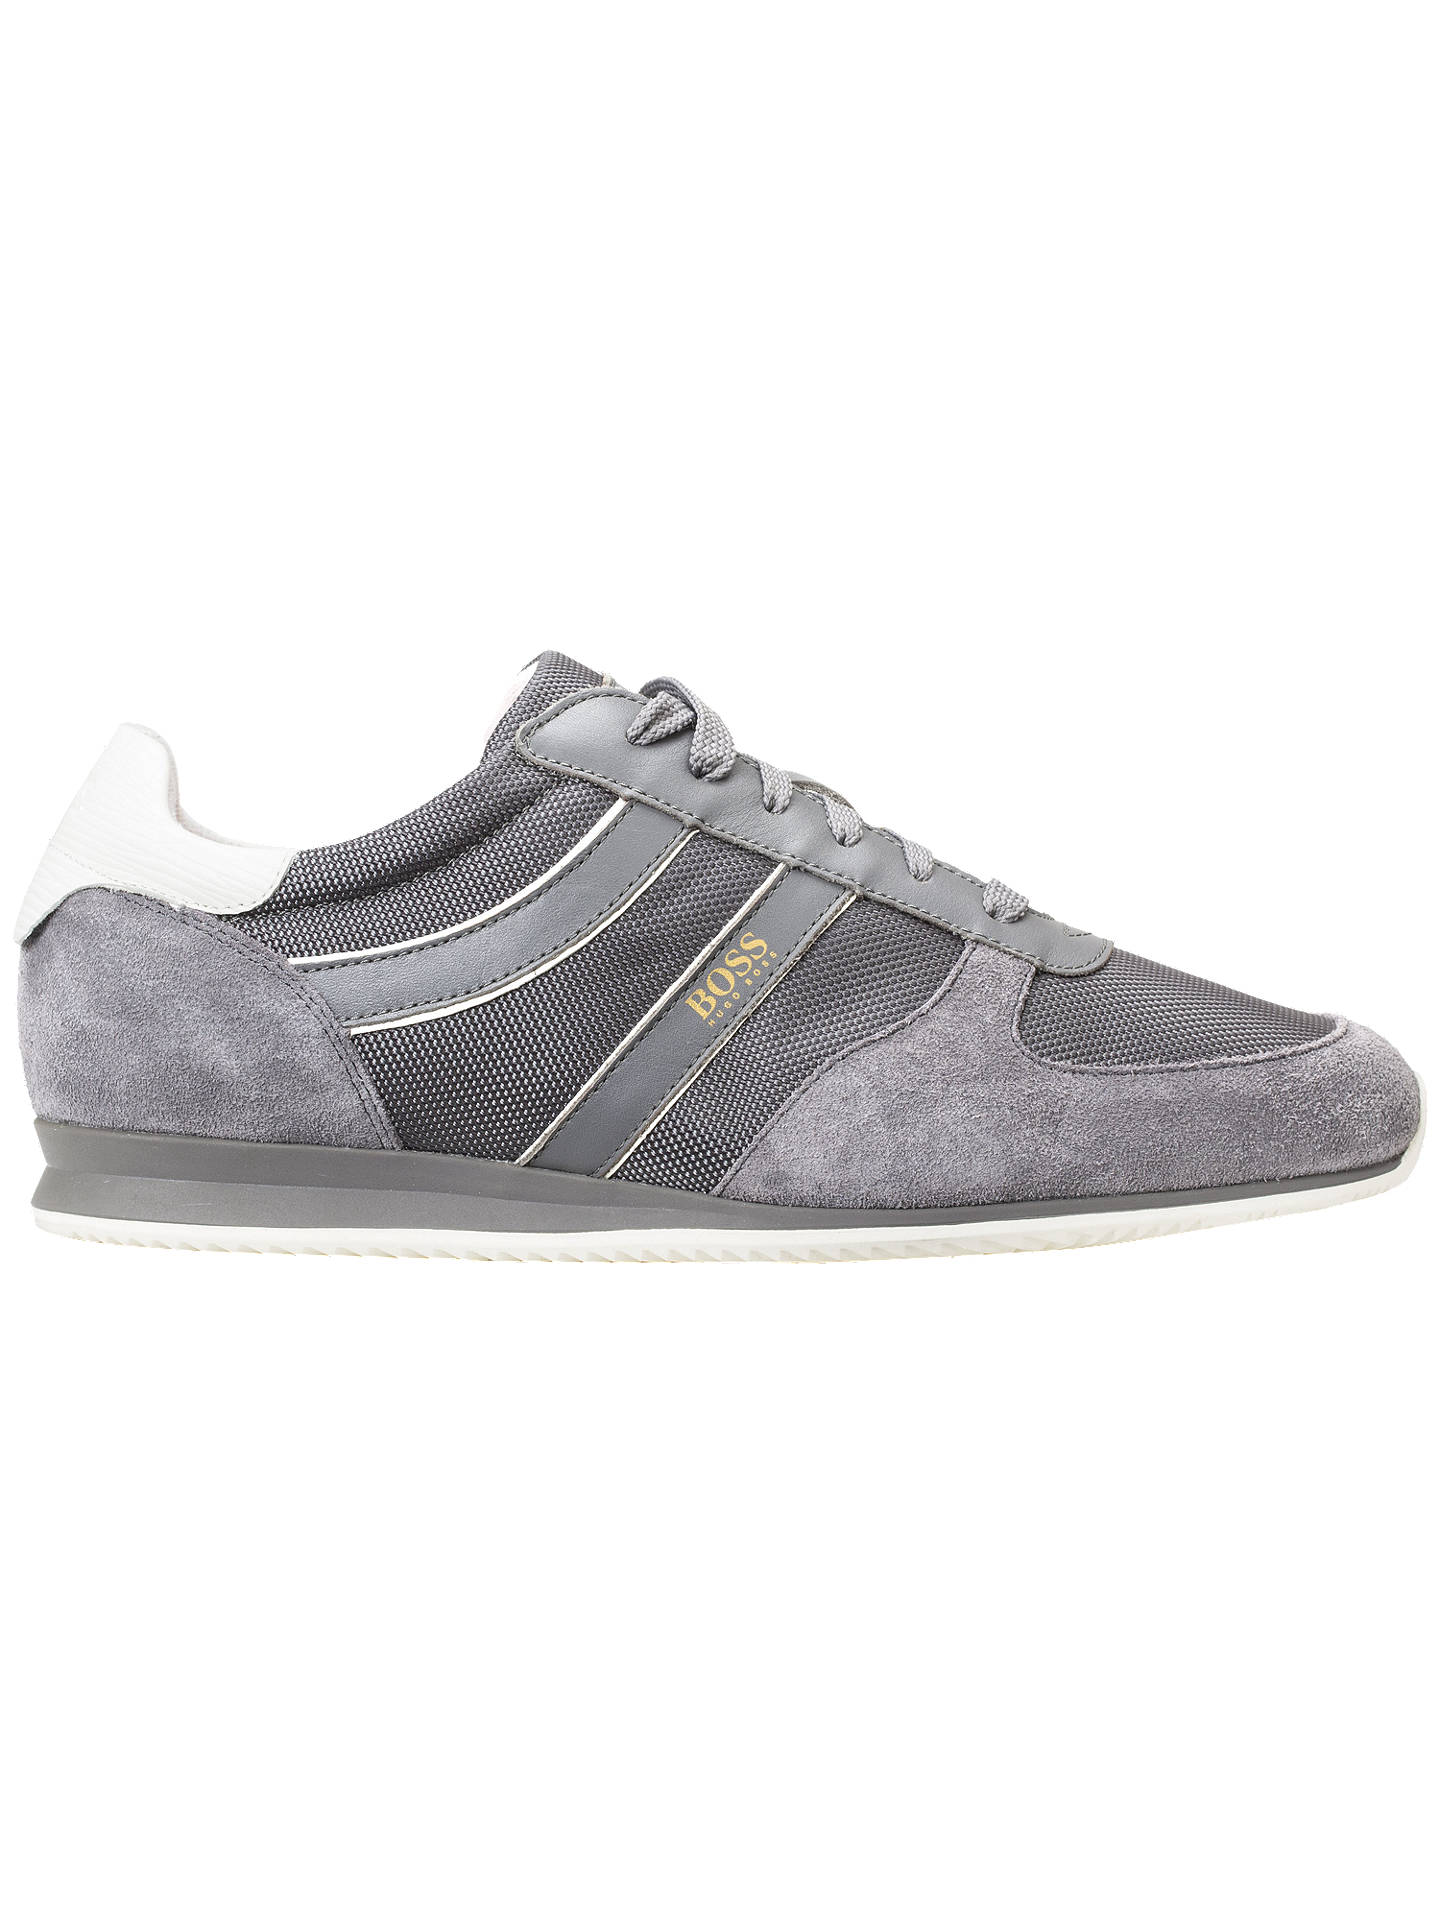 c0502979b03 Buy HUGO BOSS Orlando Trainers, Grey, 7 Online at johnlewis.com